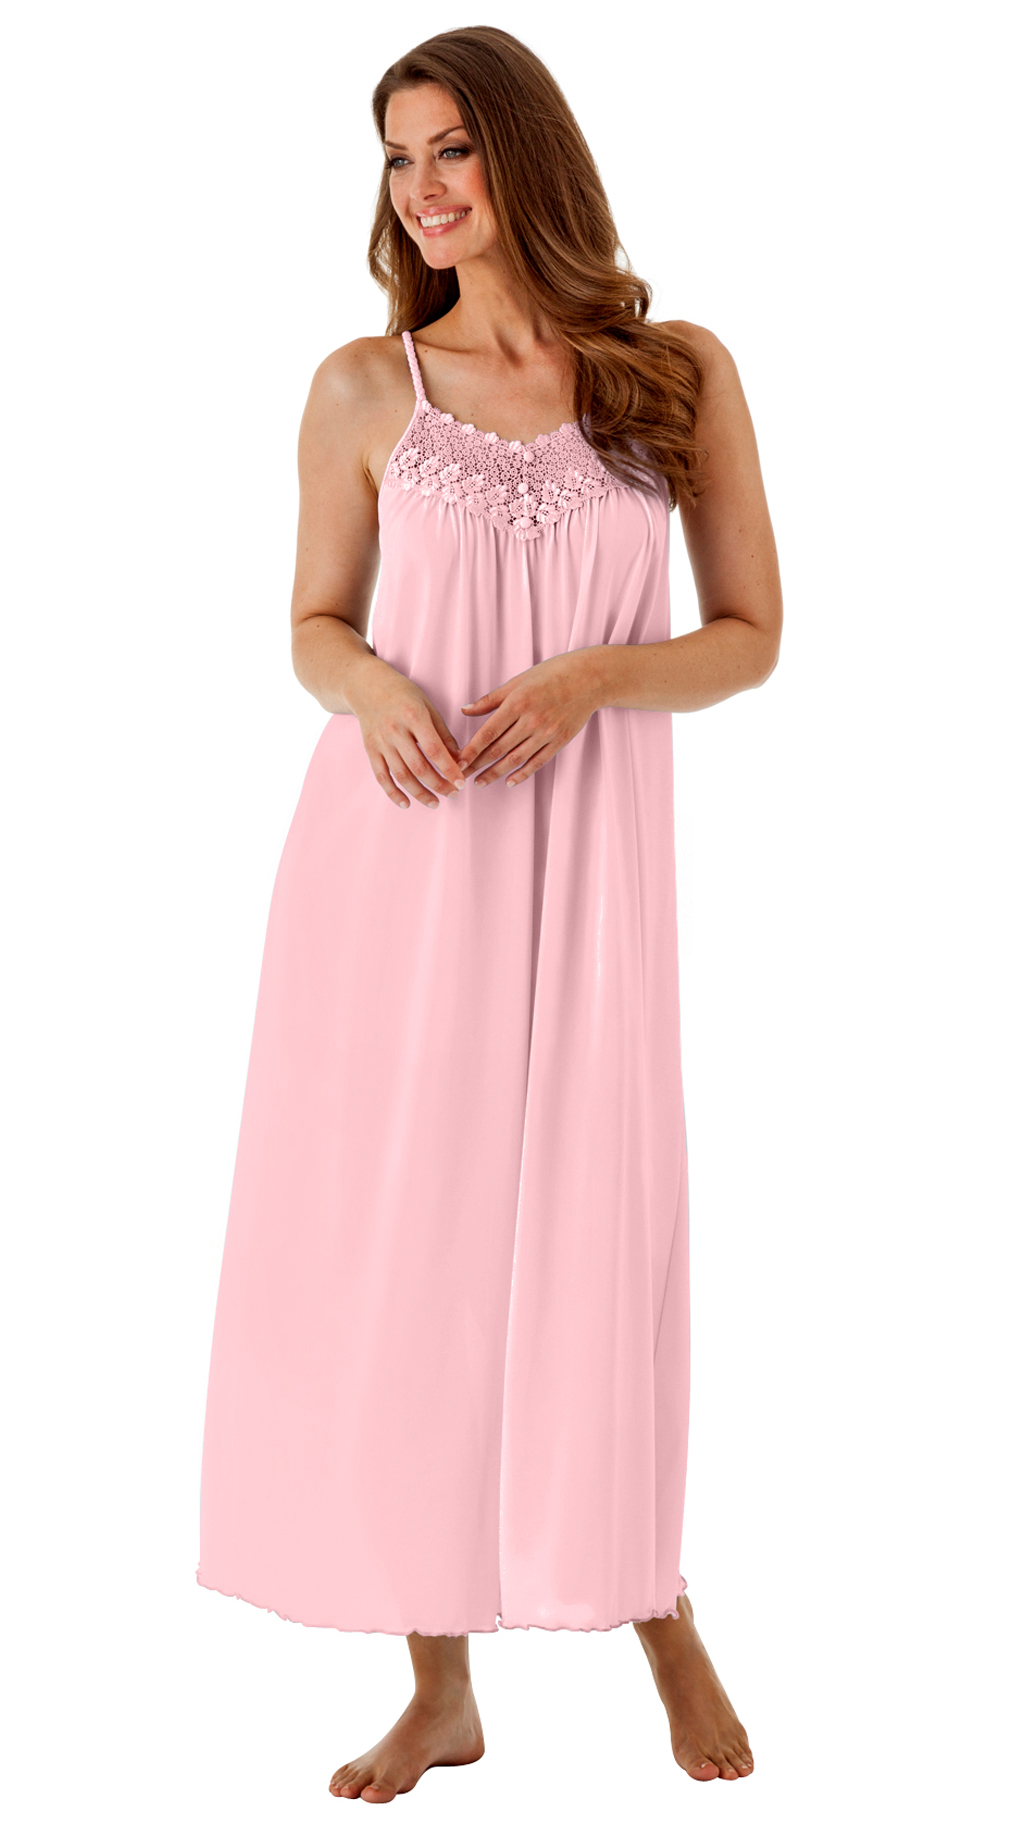 Free shipping and free returns on nightgowns and nightshirts for women at allshop-eqe0tr01.cf